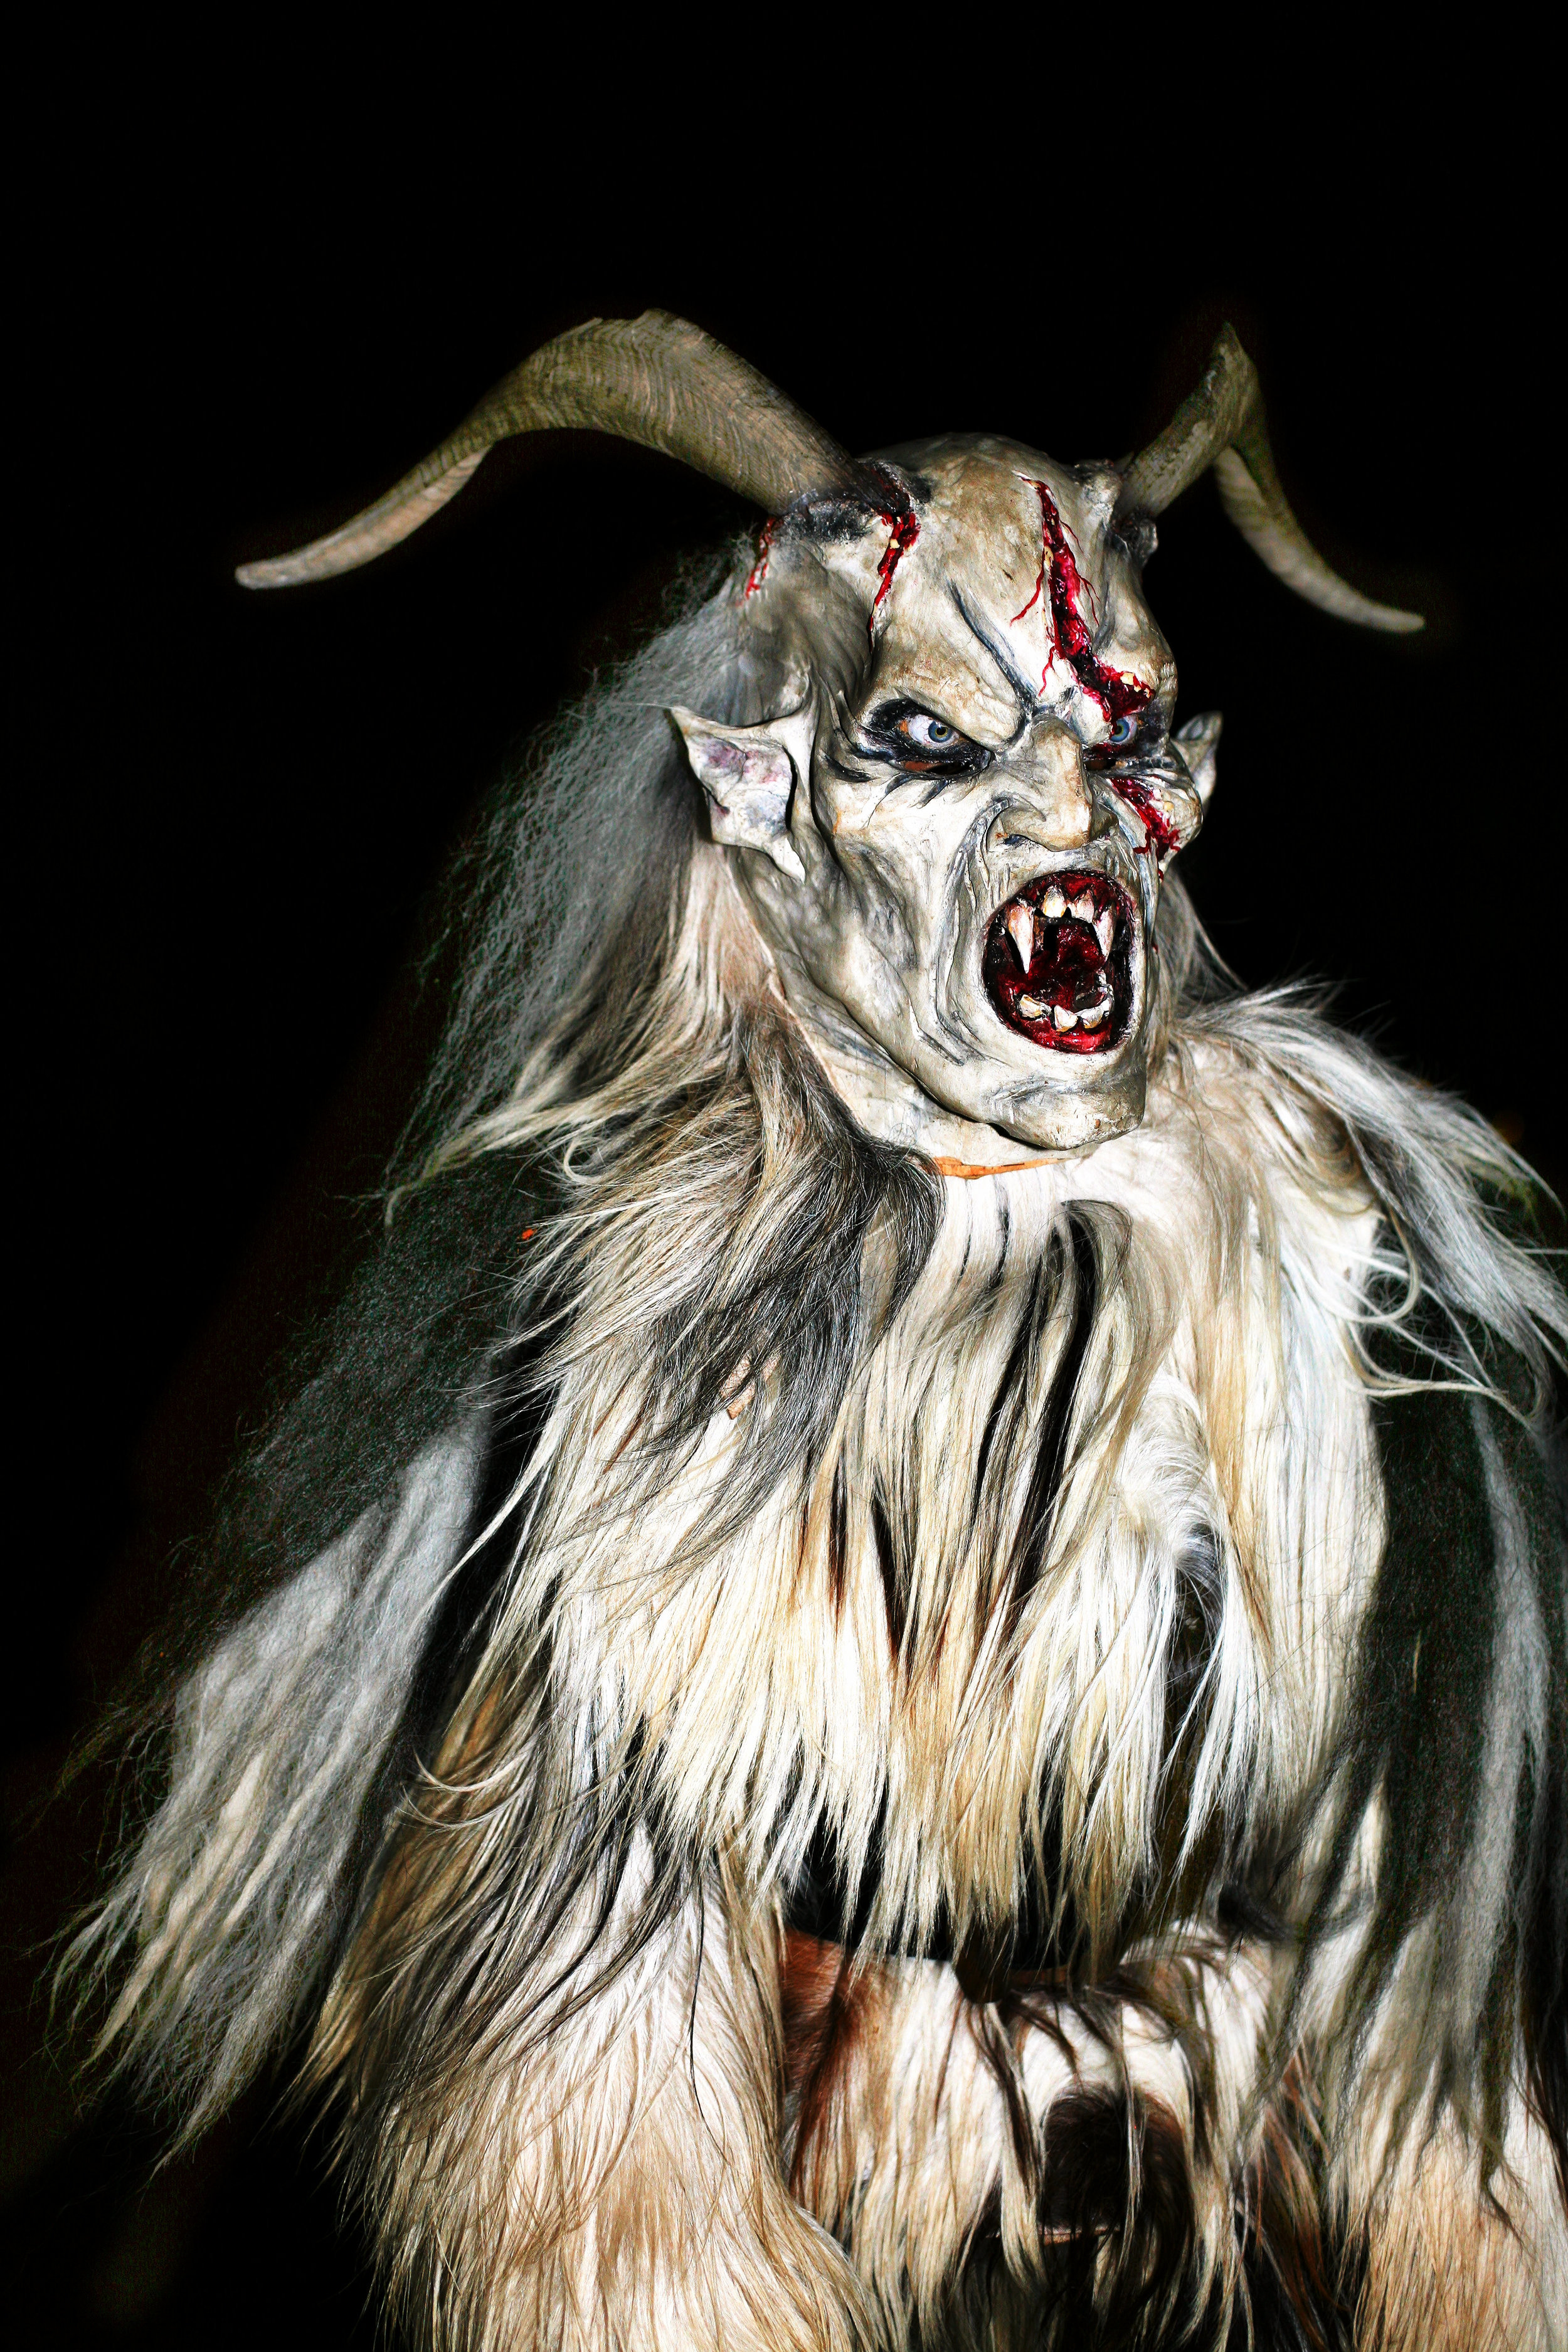 This frightening monster is called Krampus — and he's actually part of Christmas celebrations in Austria and other countries in Central Europe